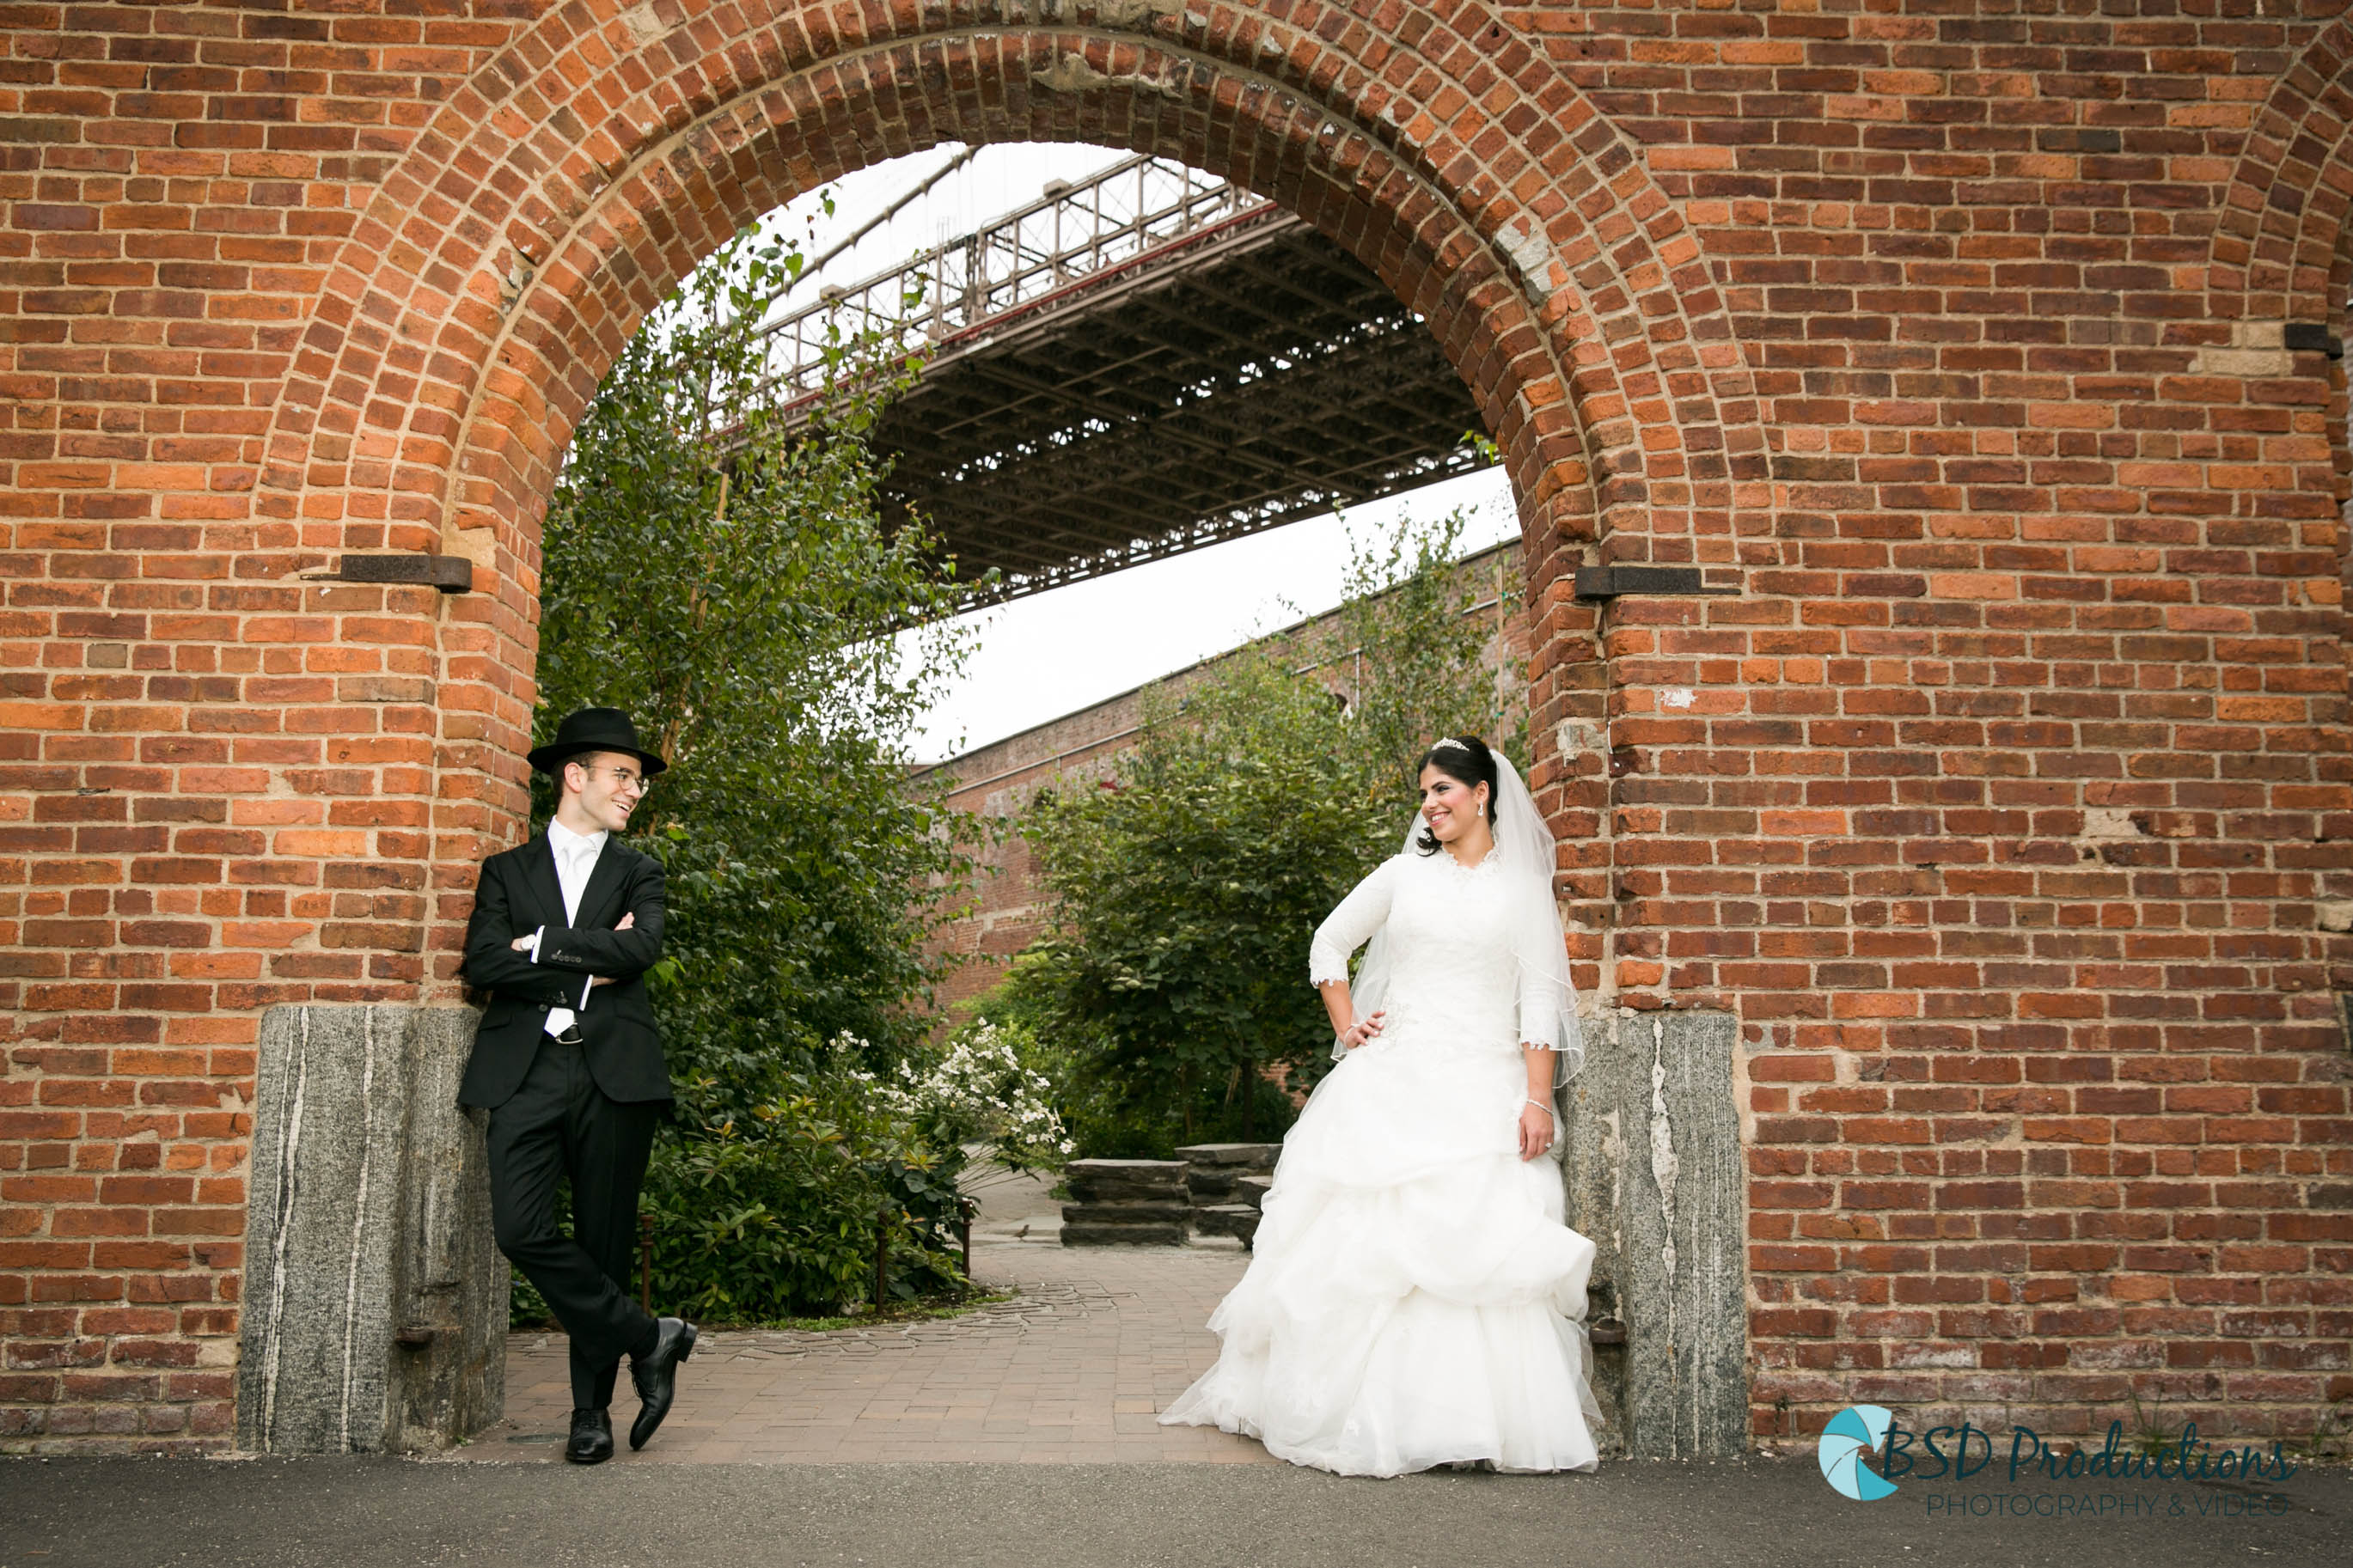 UH5A0216 Wedding – BSD Productions Photography